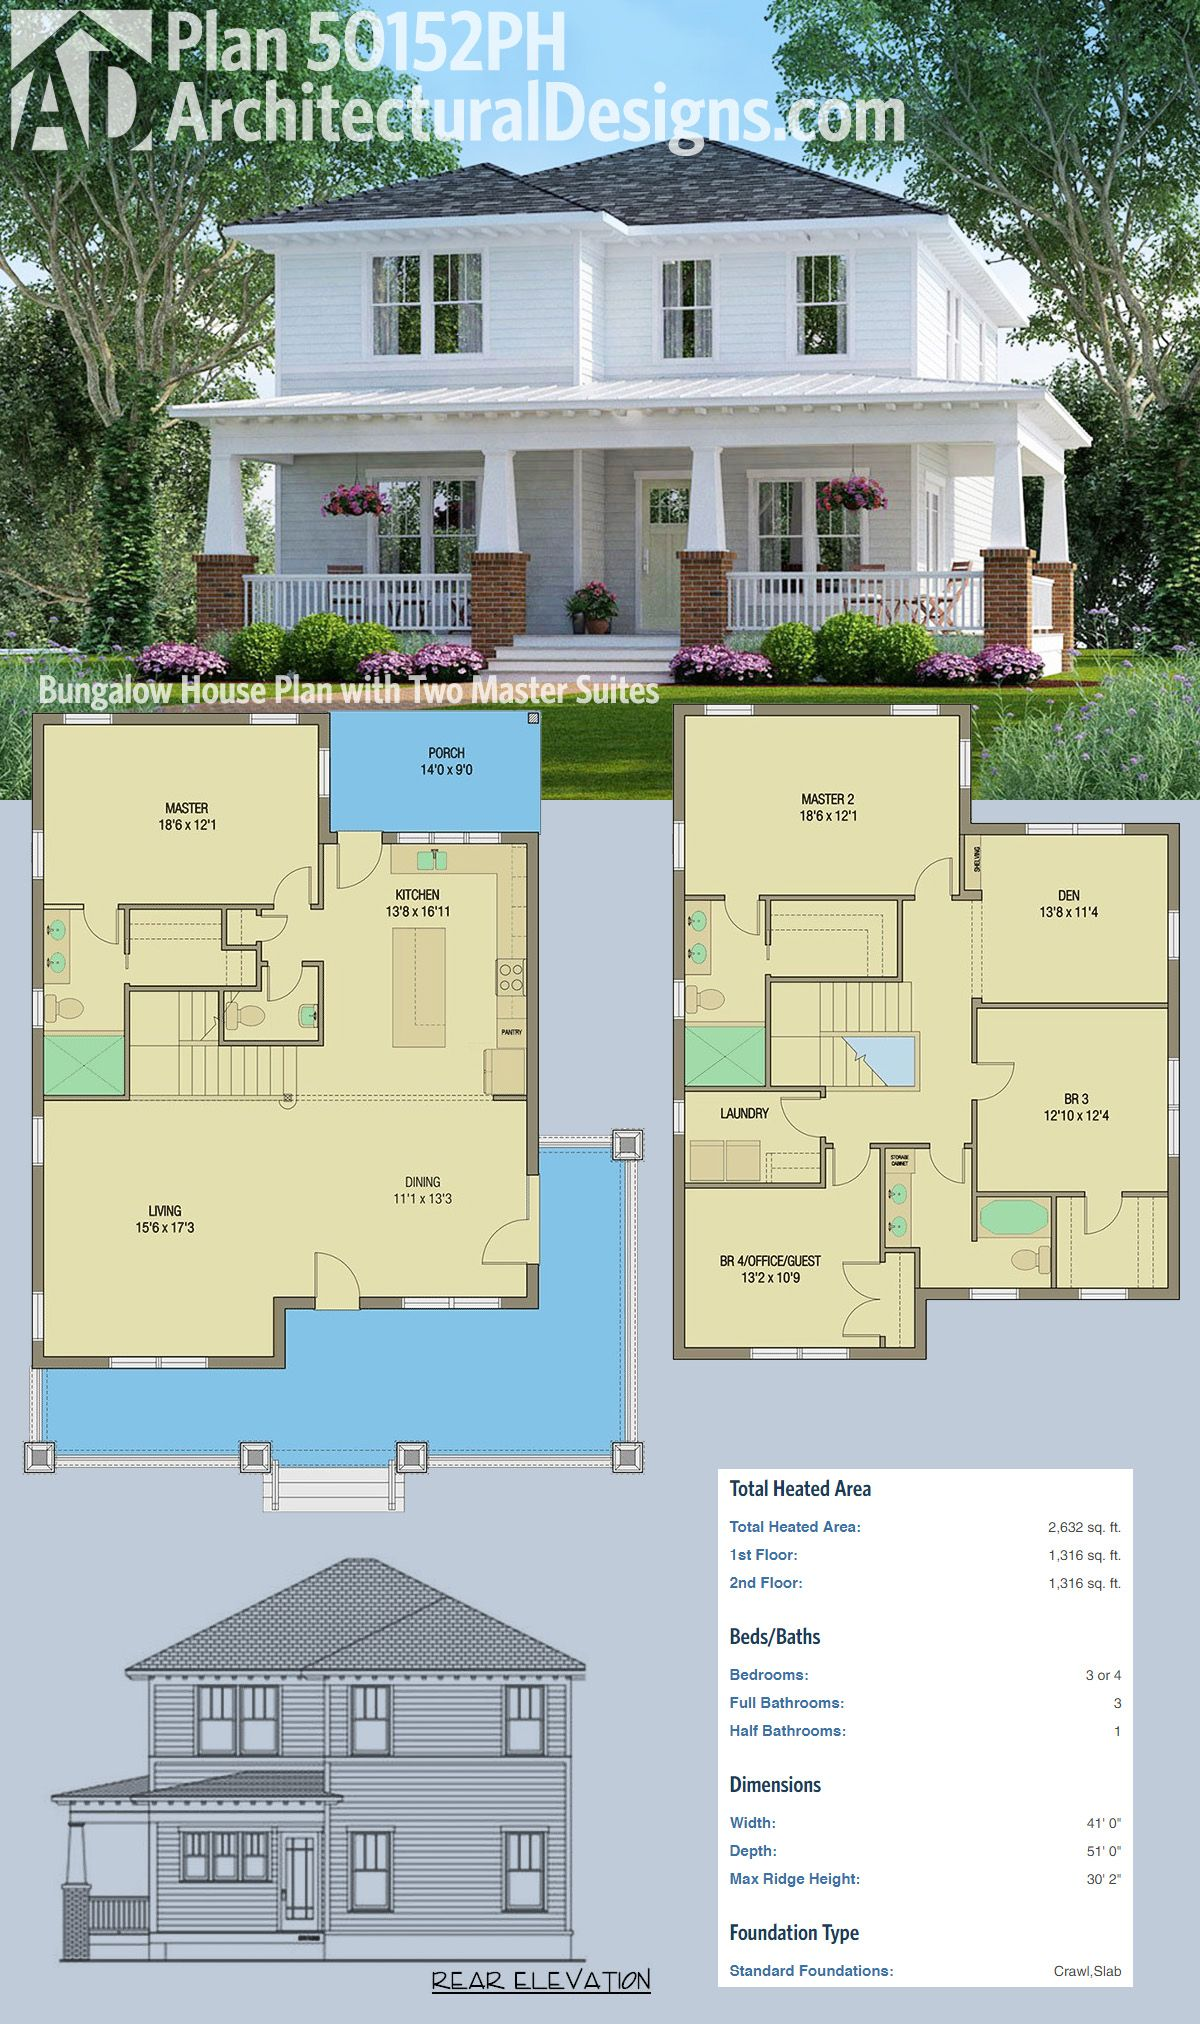 Architectural Designs House Plan 50152PH gives you a wraparound     Architectural Designs House Plan 50152PH gives you a wraparound porch  two  master suites and over 2 600 square feet of heated living space